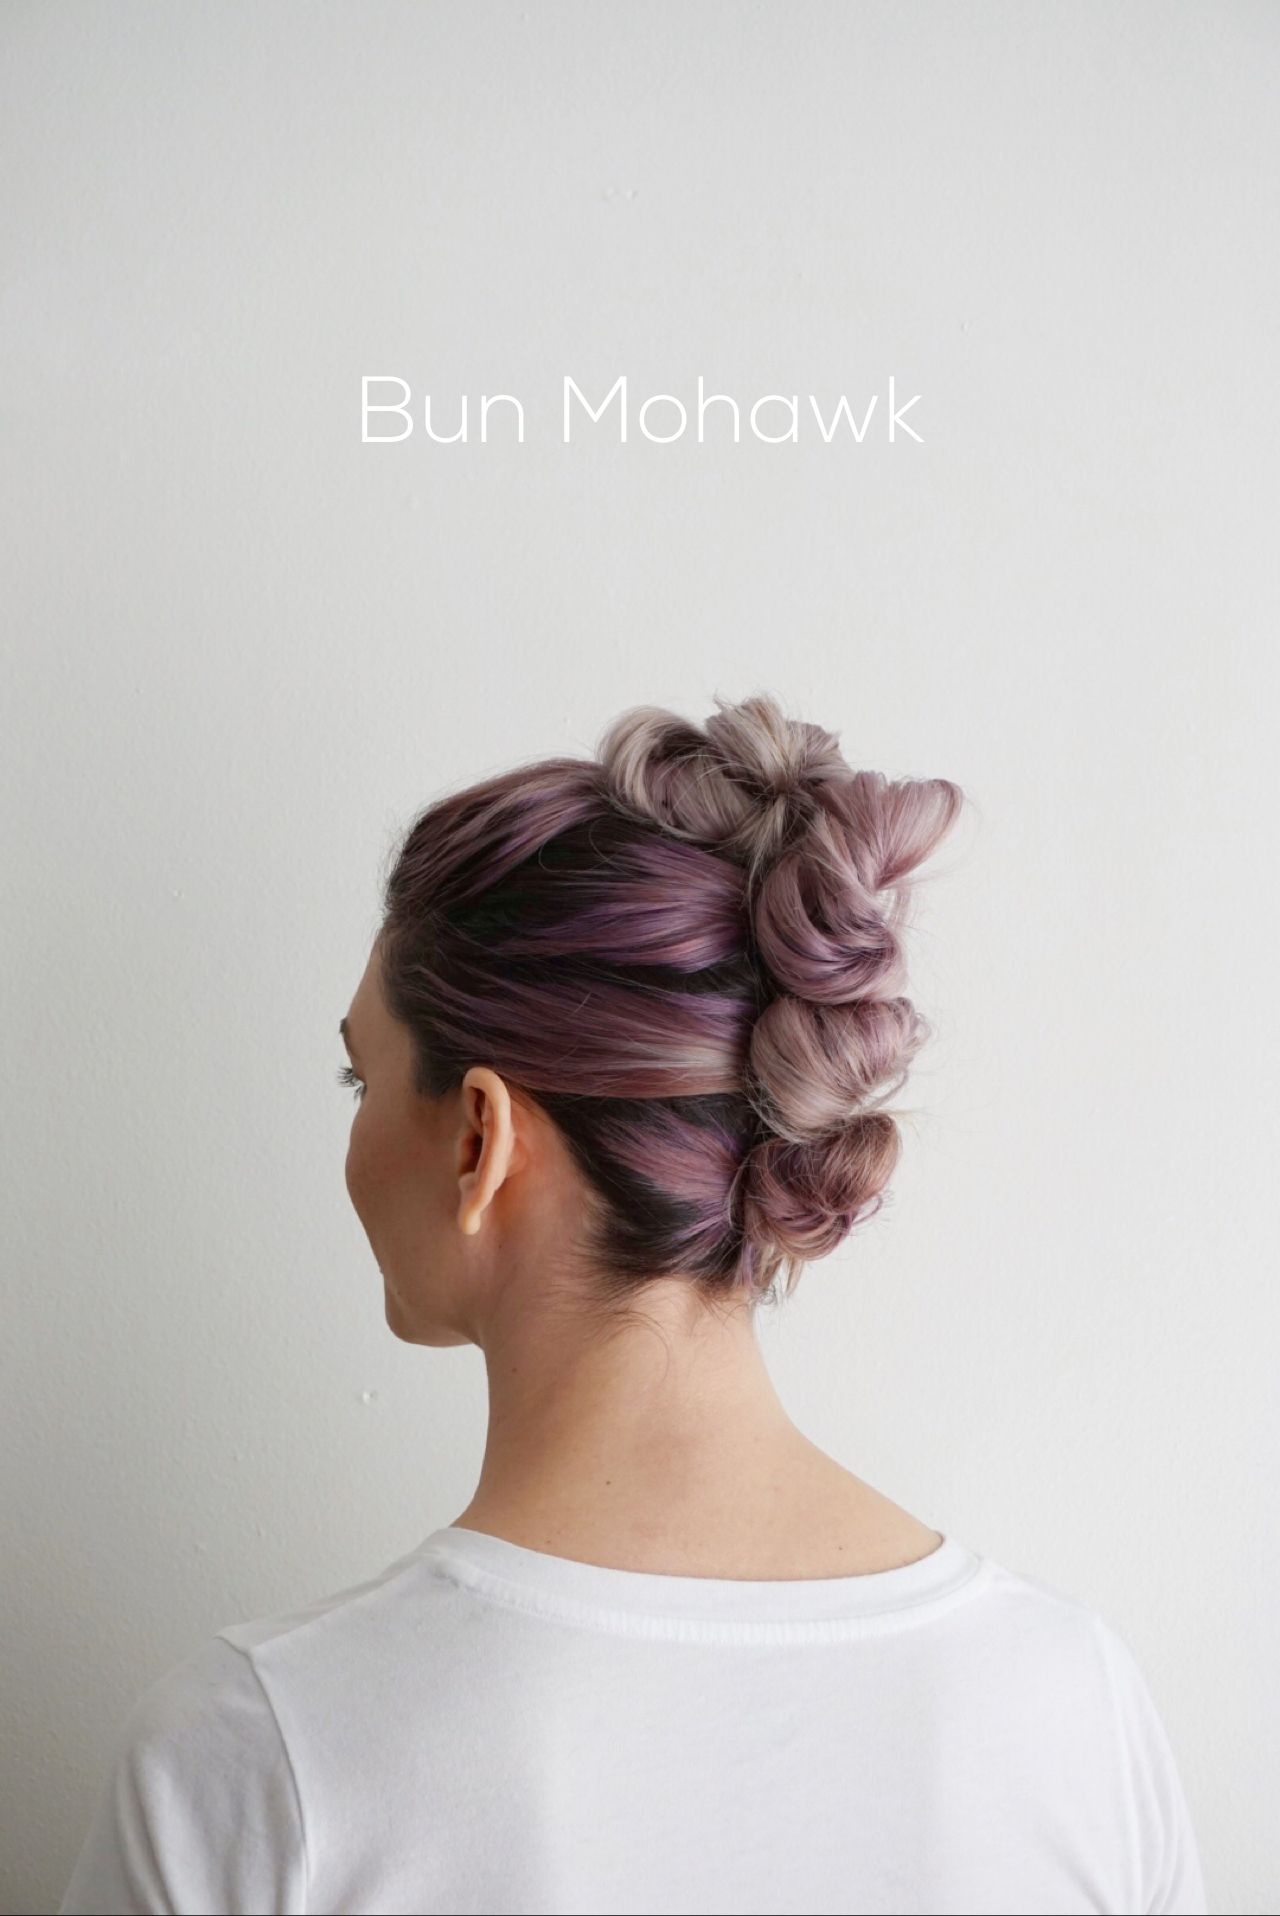 Hairstyle bun mohawk diy pinterest mohawks hair style and